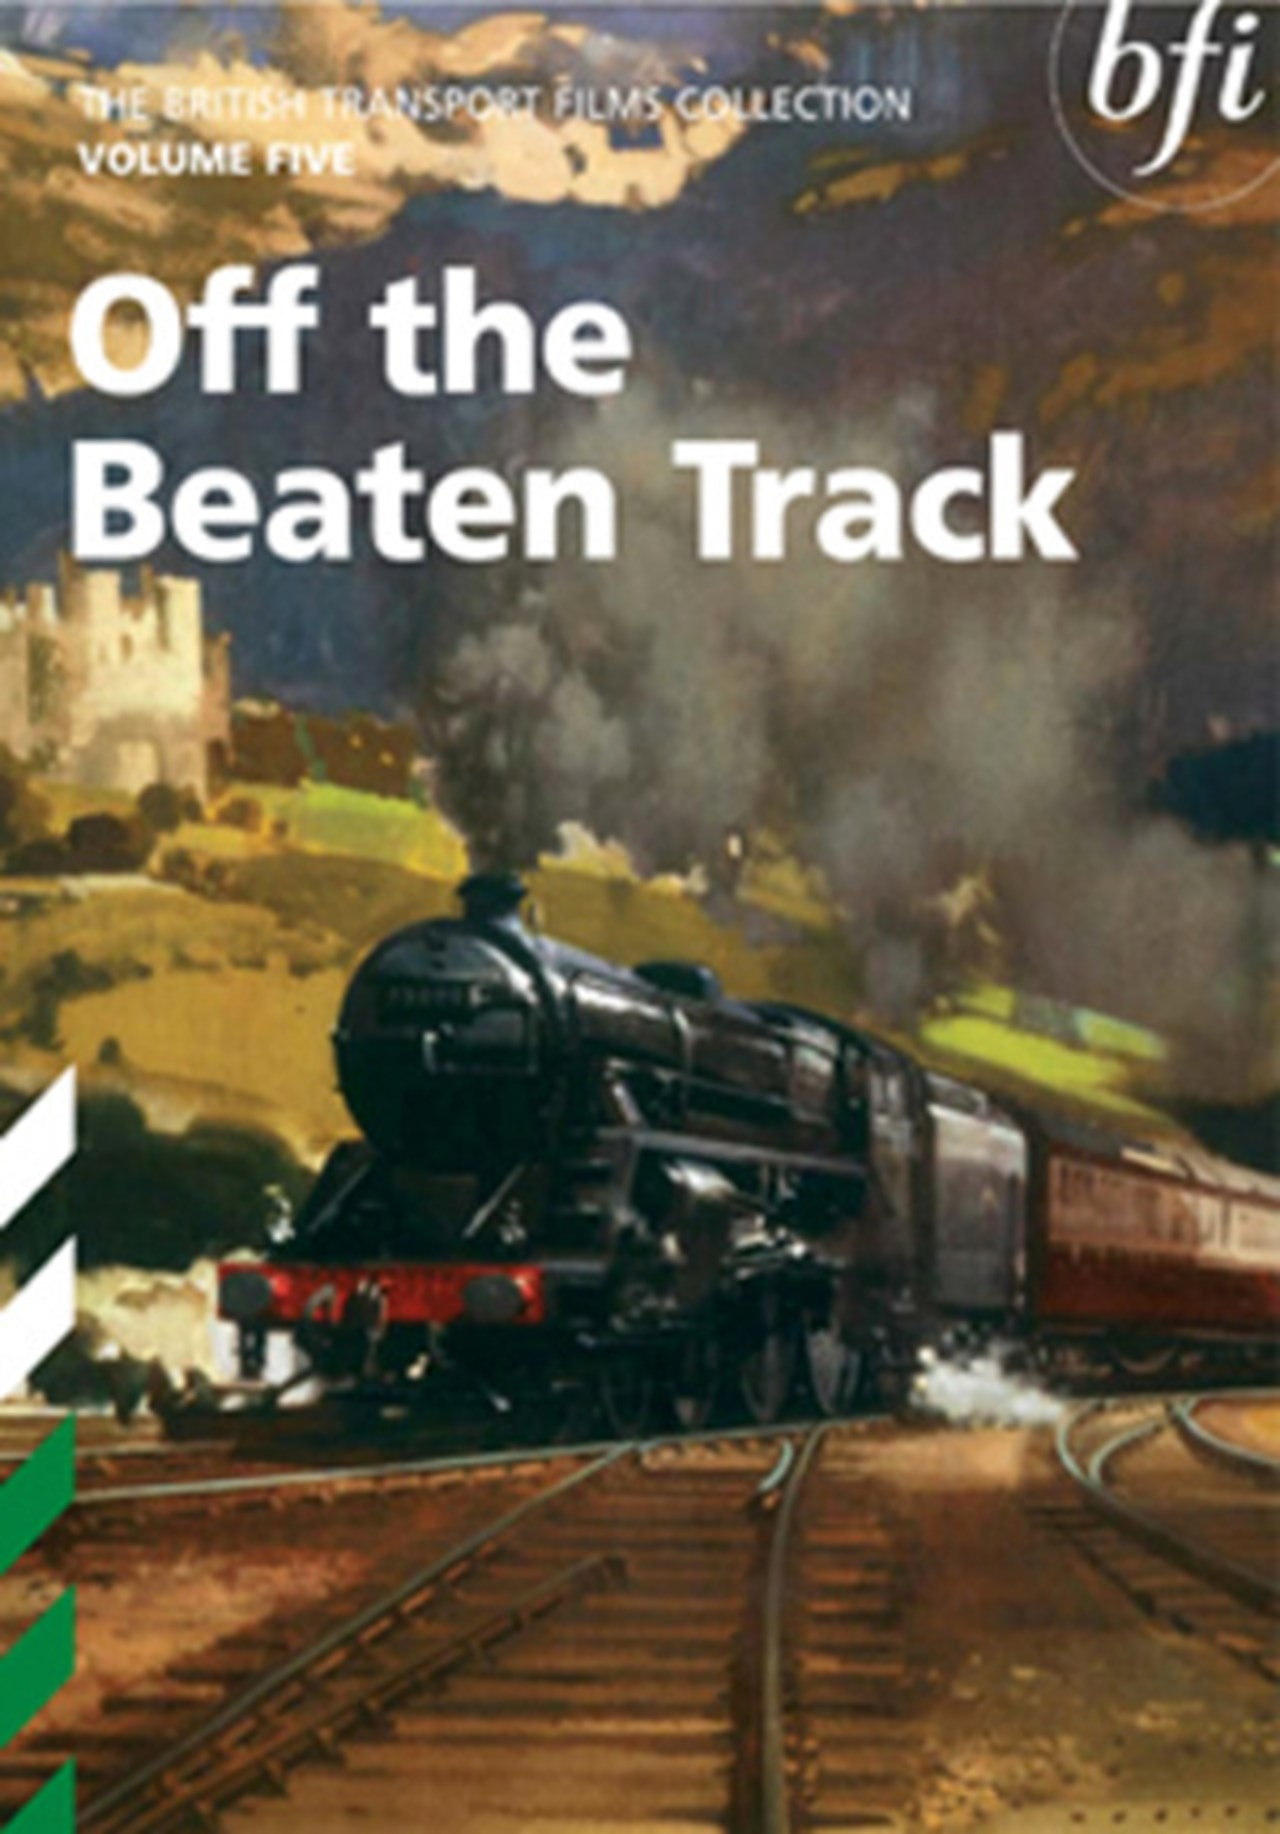 British Transport Films: Collection 5 - Off the Beaten Track - 1